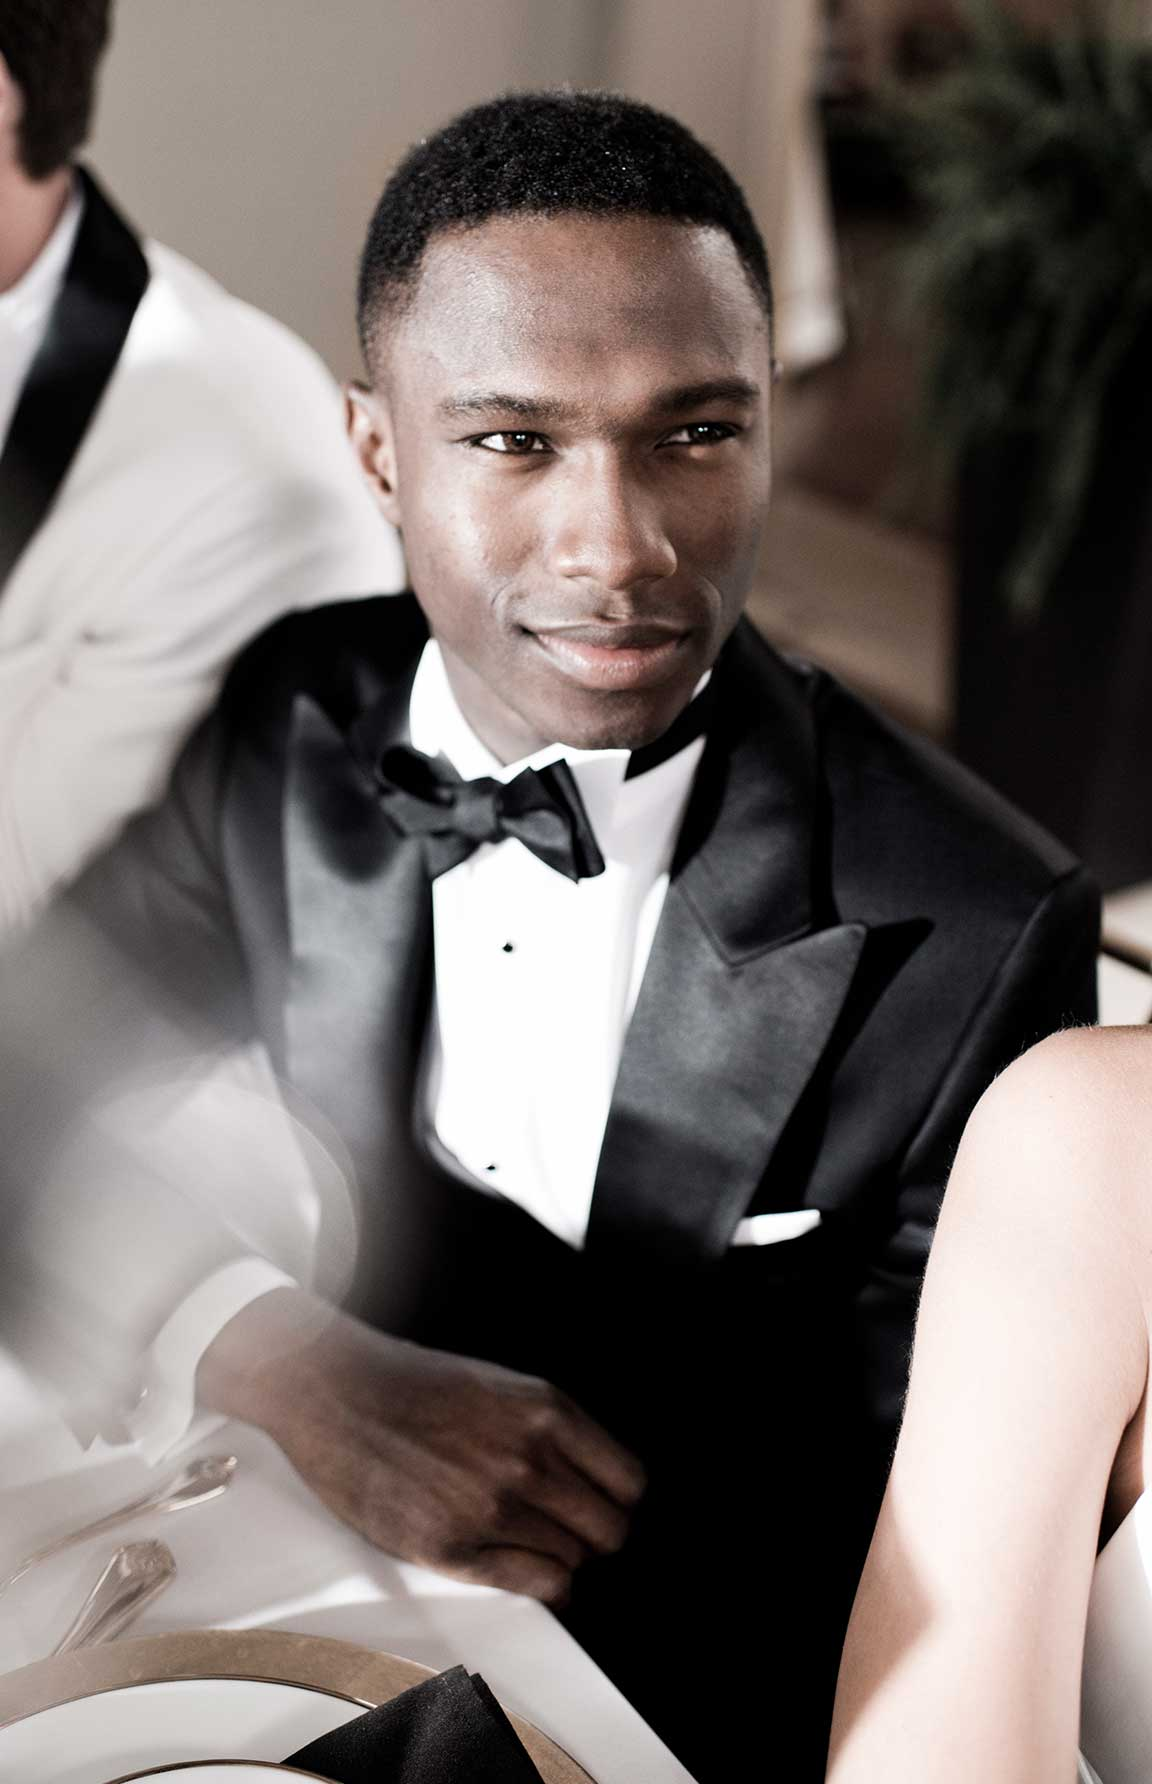 Black tie always calls for a classy black bow tie.